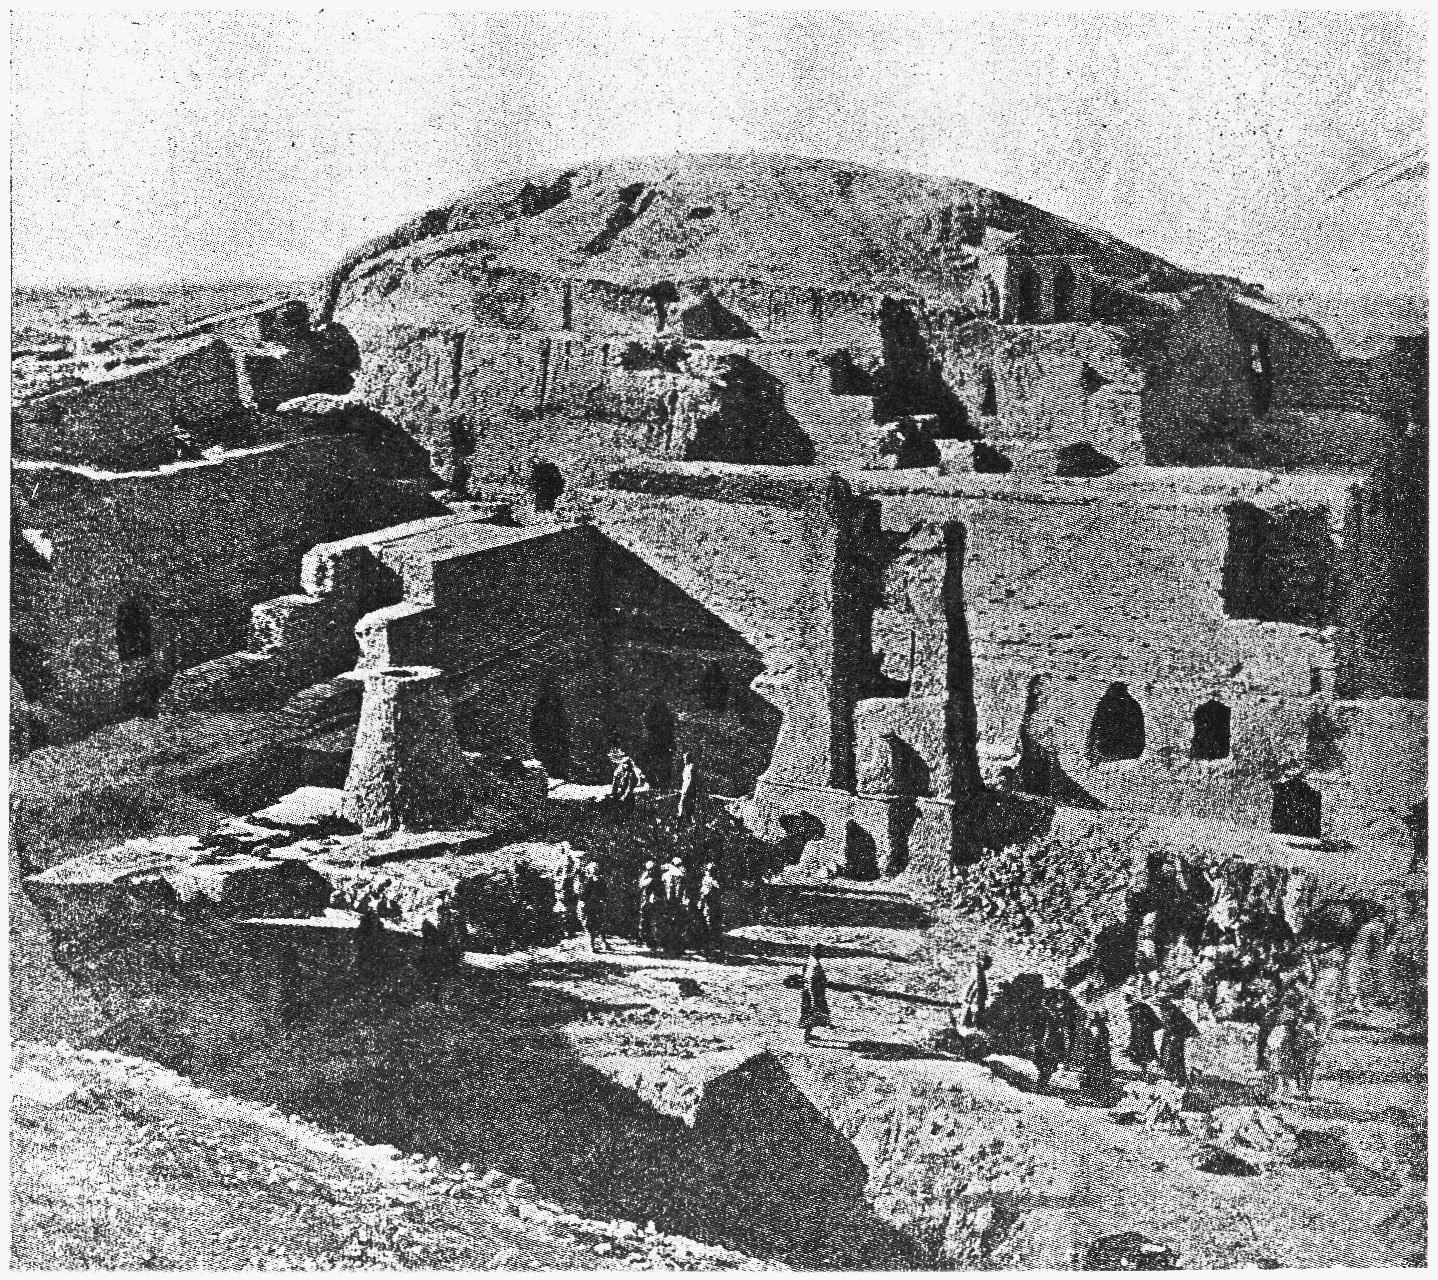 3ad - early excavation of Enlil's city, Nippur is between the Tigris & the Euphrates Rivers